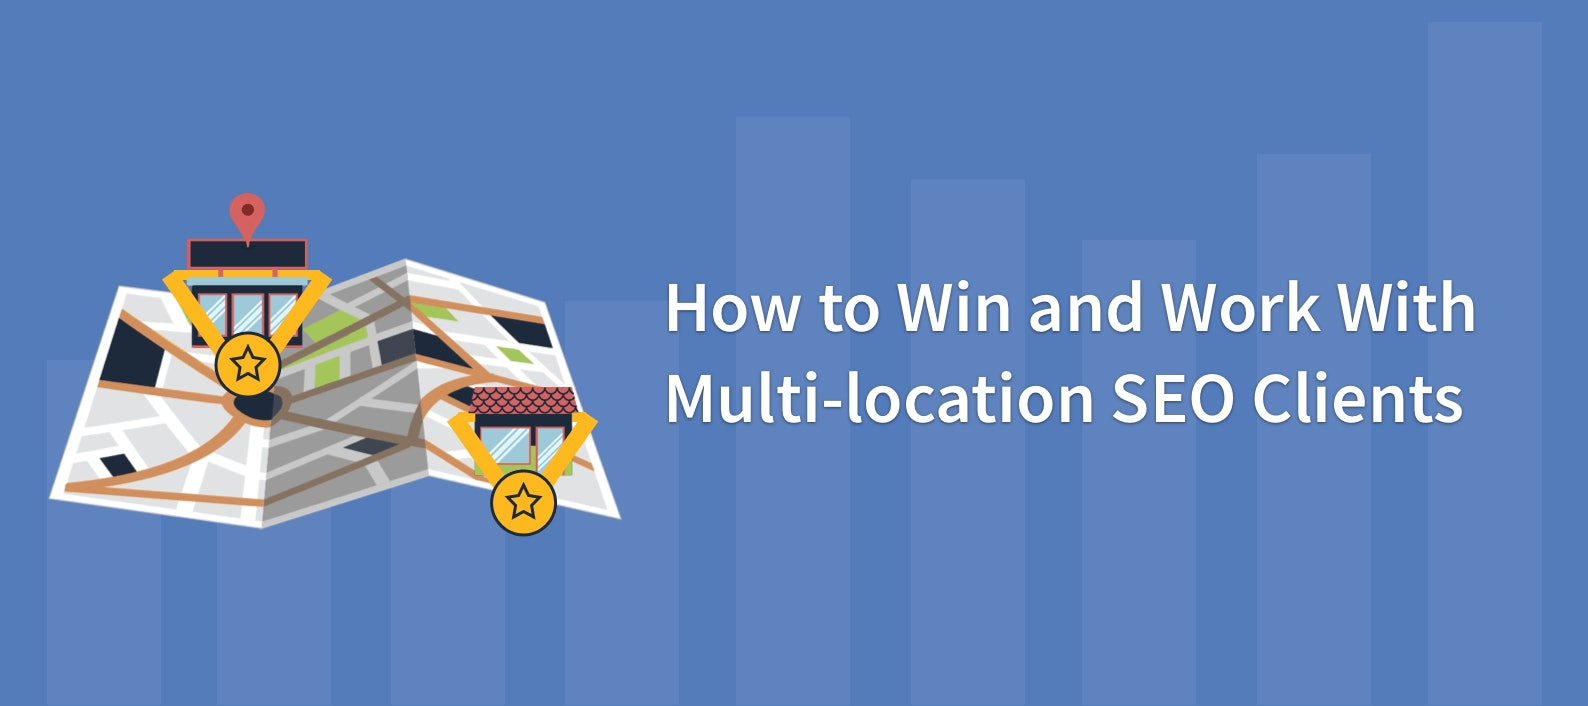 How to Win and Work With Multi-location SEO Clients